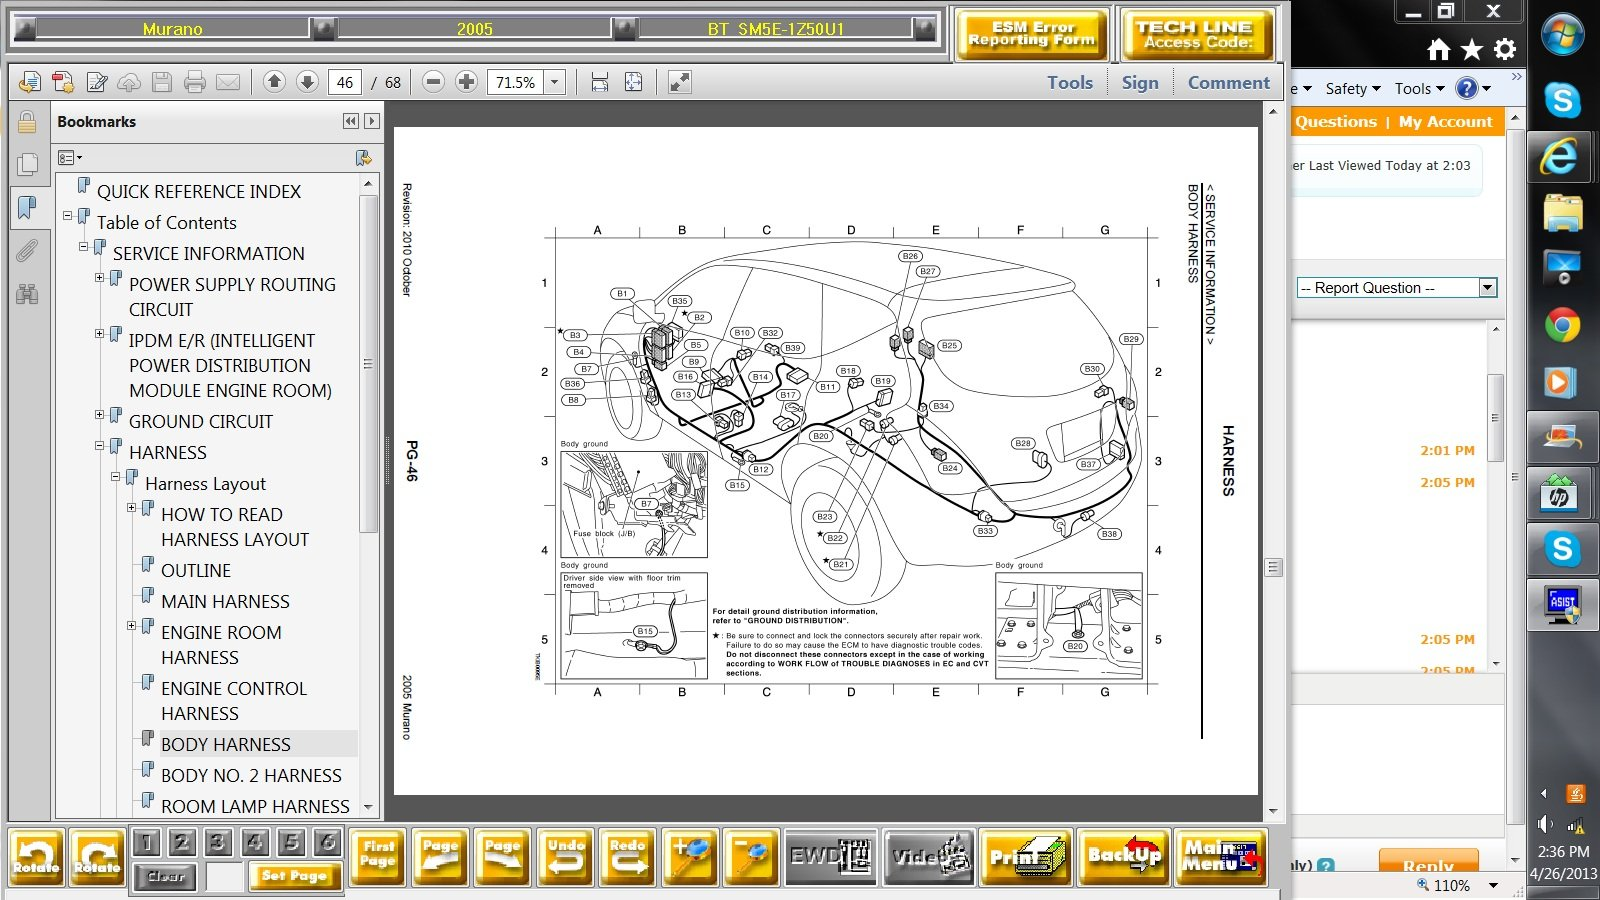 2005 Nissan Murano The Rear Hatch Release Does Not Work From 2013 Wiring Diagrams Full Size Image